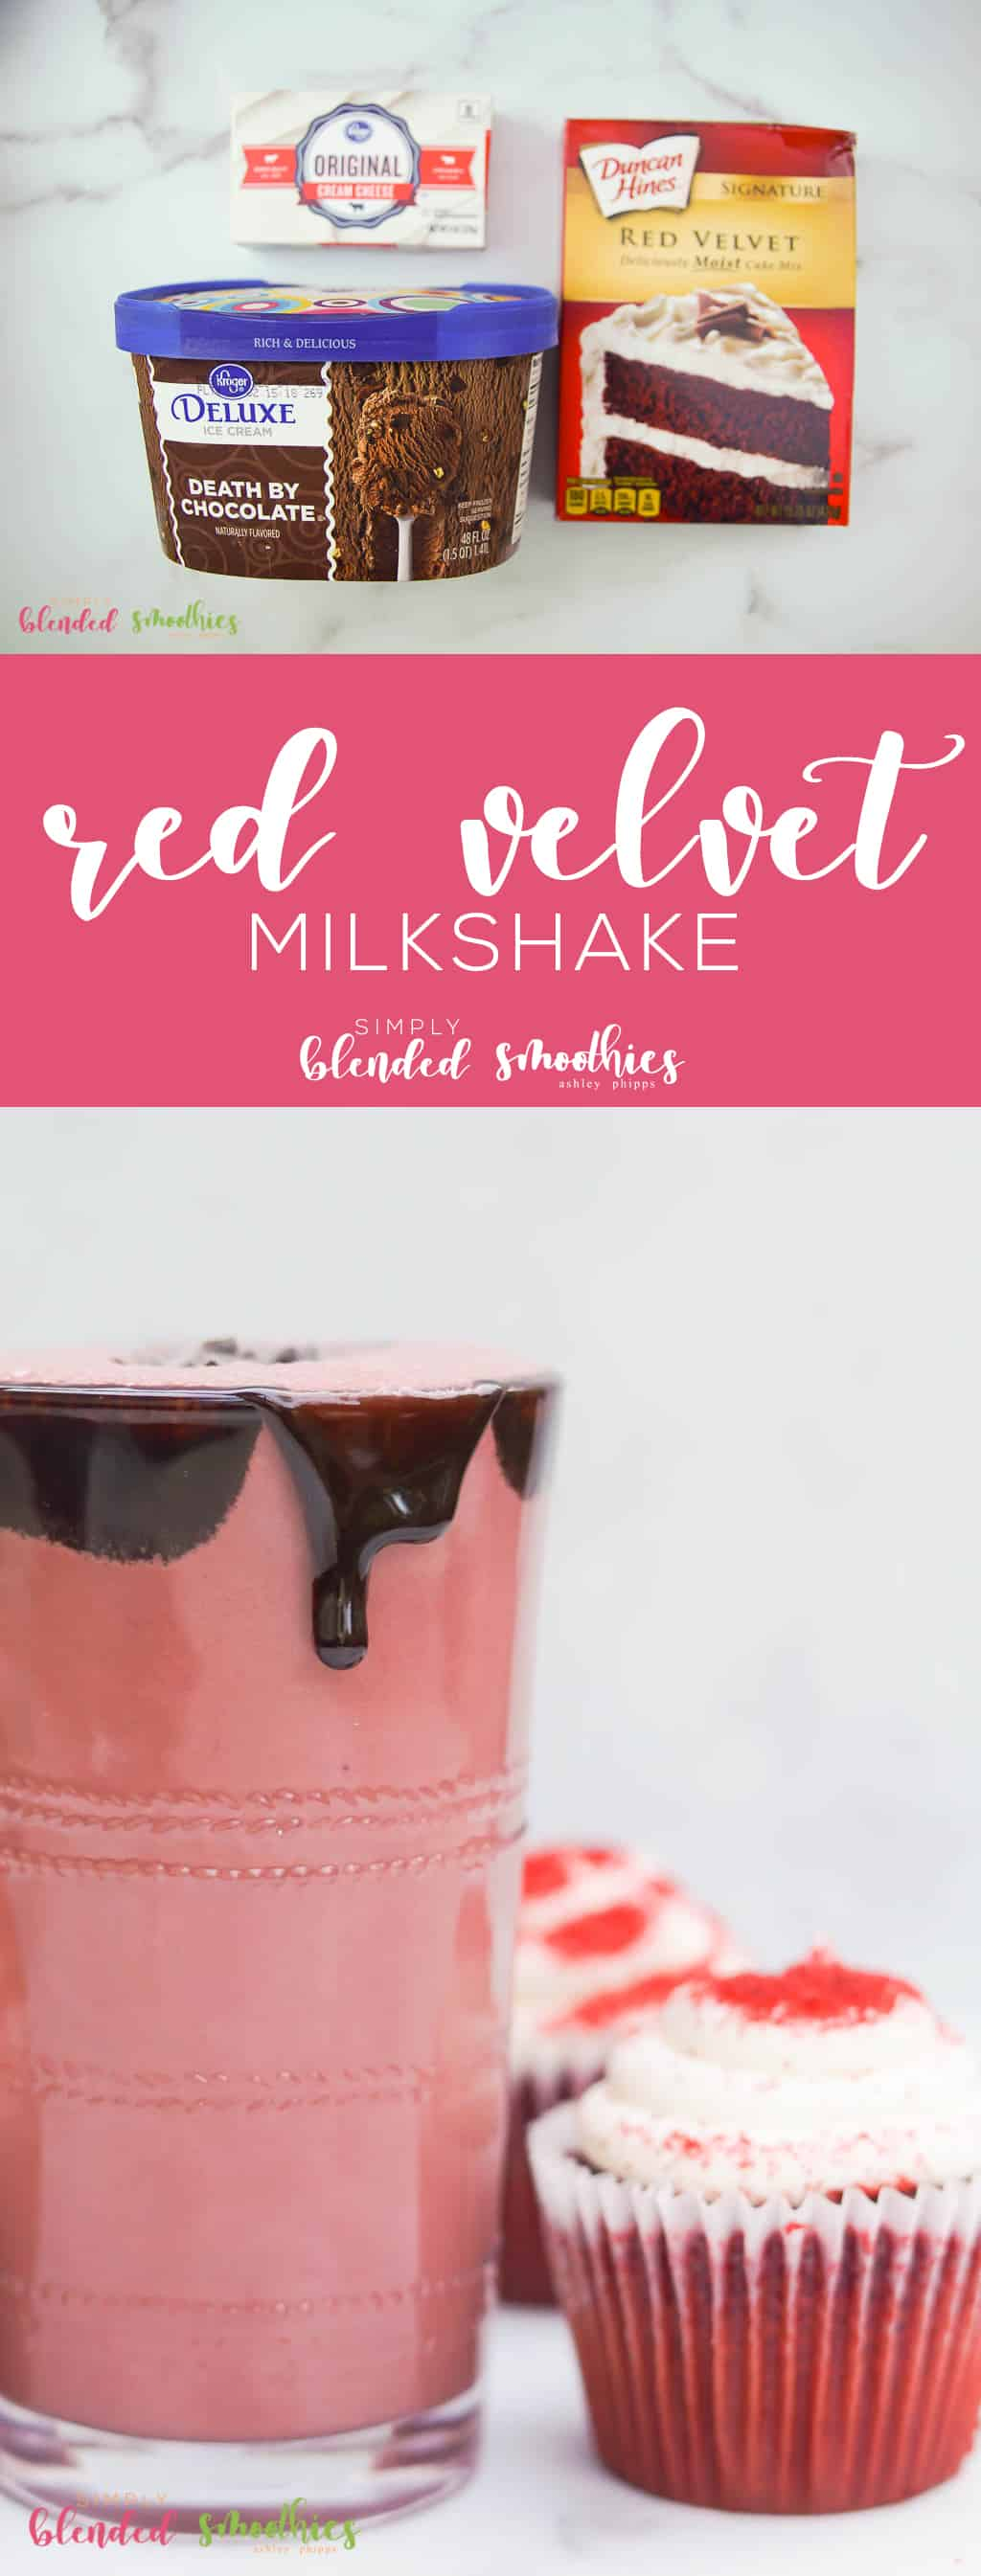 This Red Velvet Milkshake is so delicious and tastes just like a yummy red velvet cupcake you are going to want to make enough to share with everyone